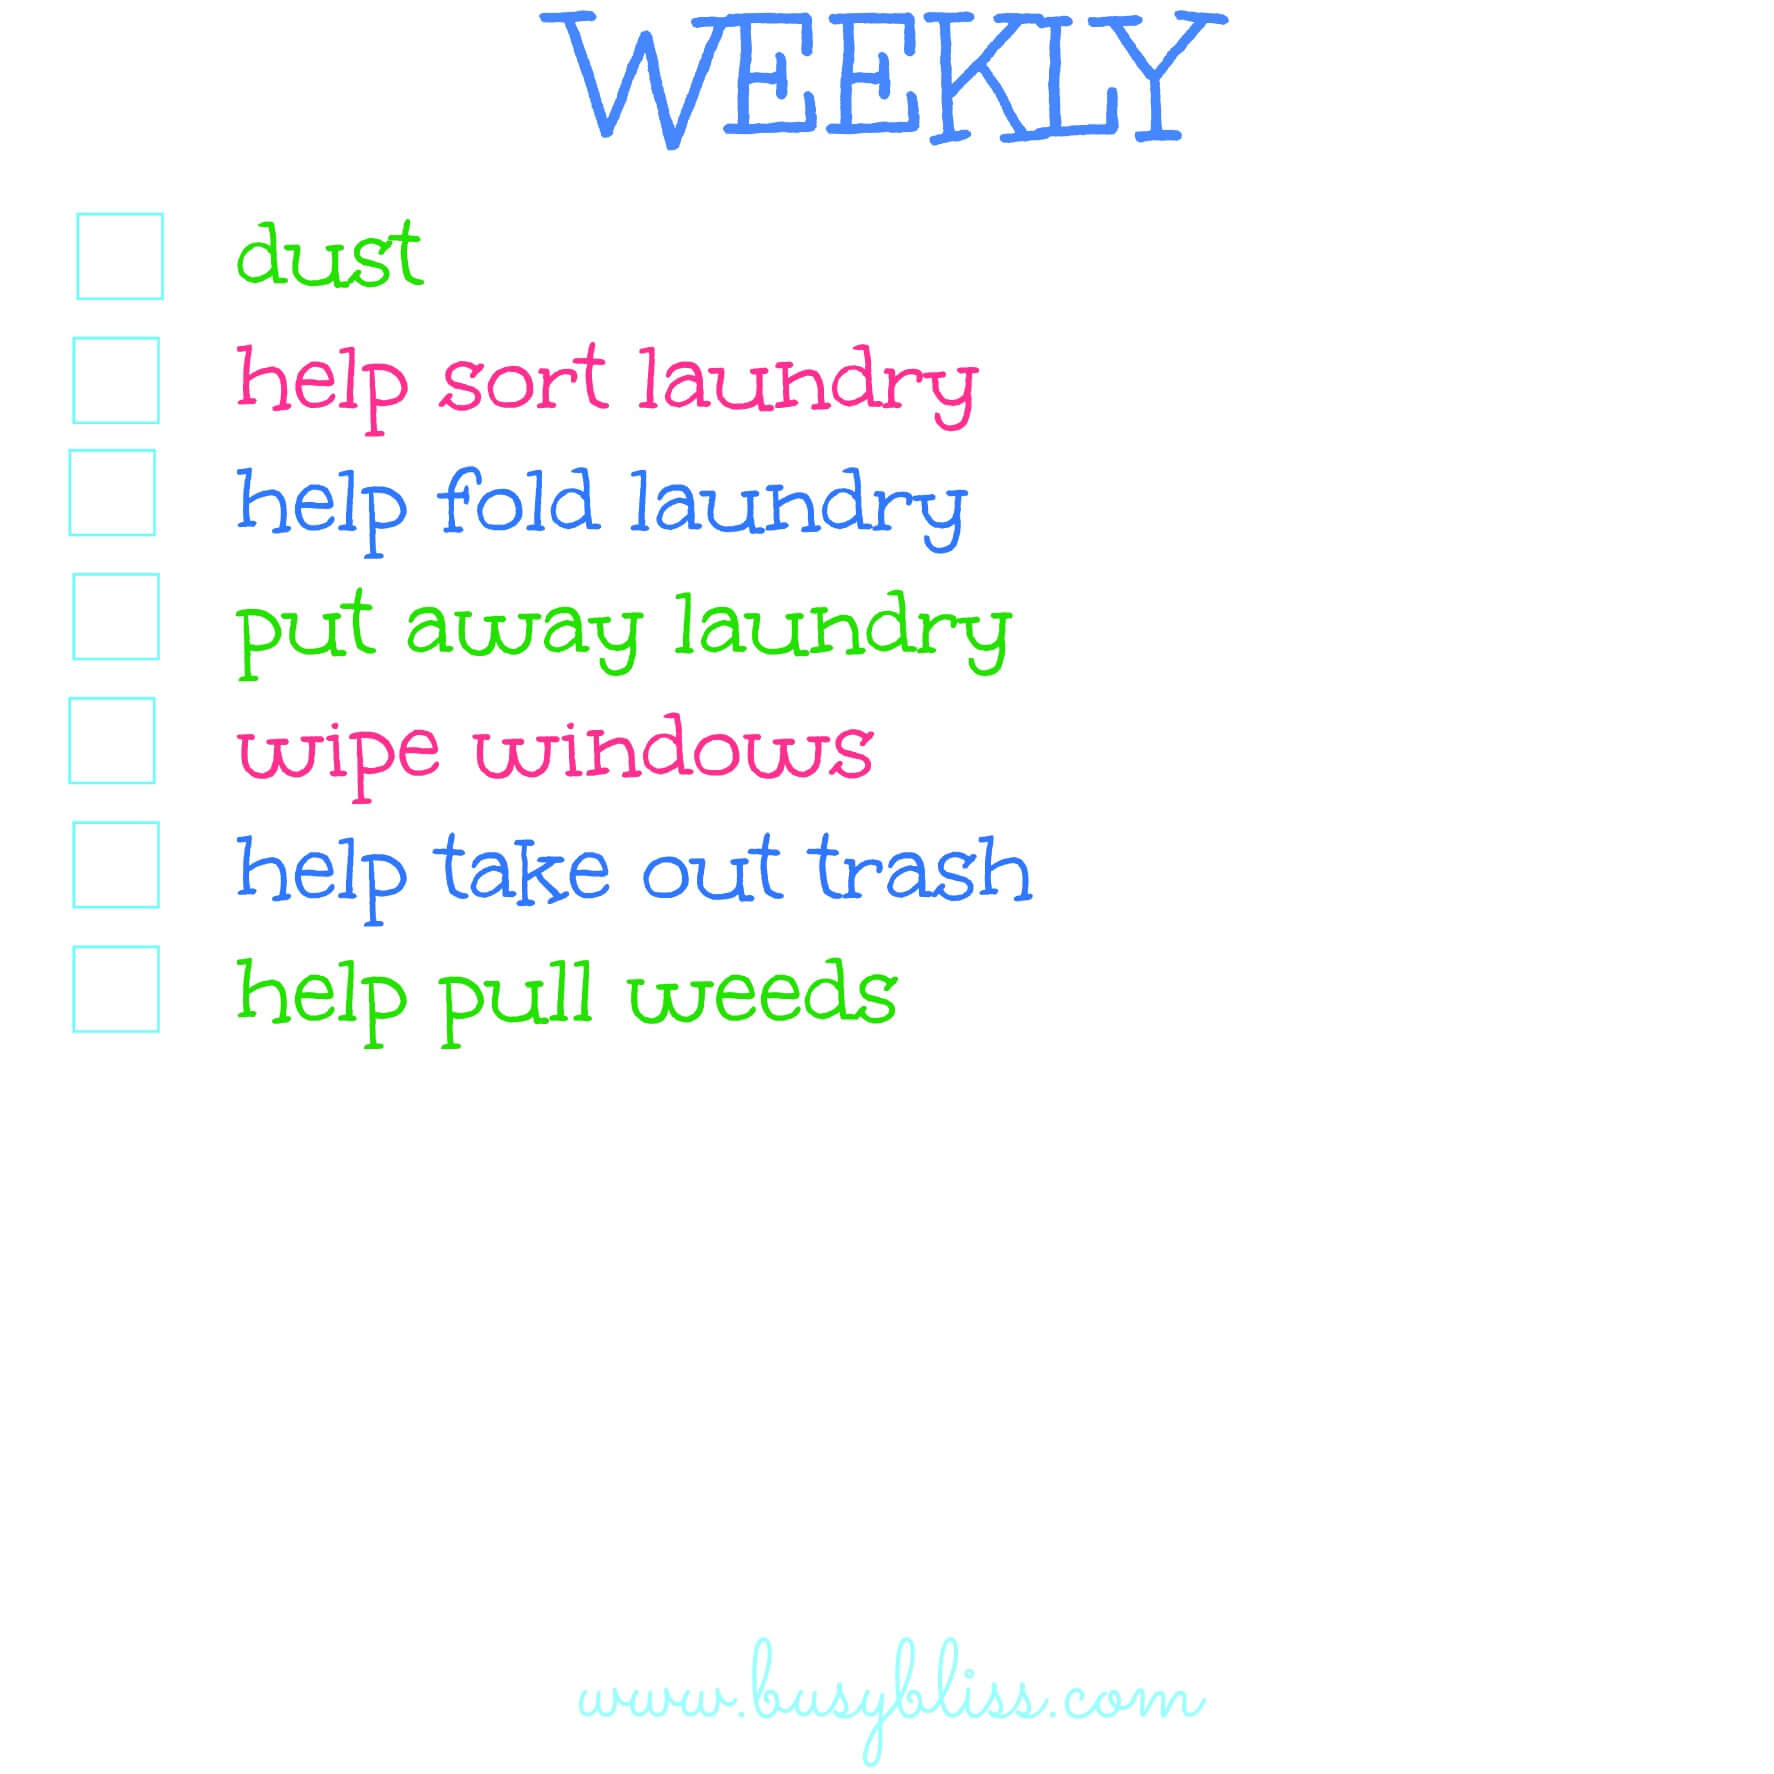 list of chores to do